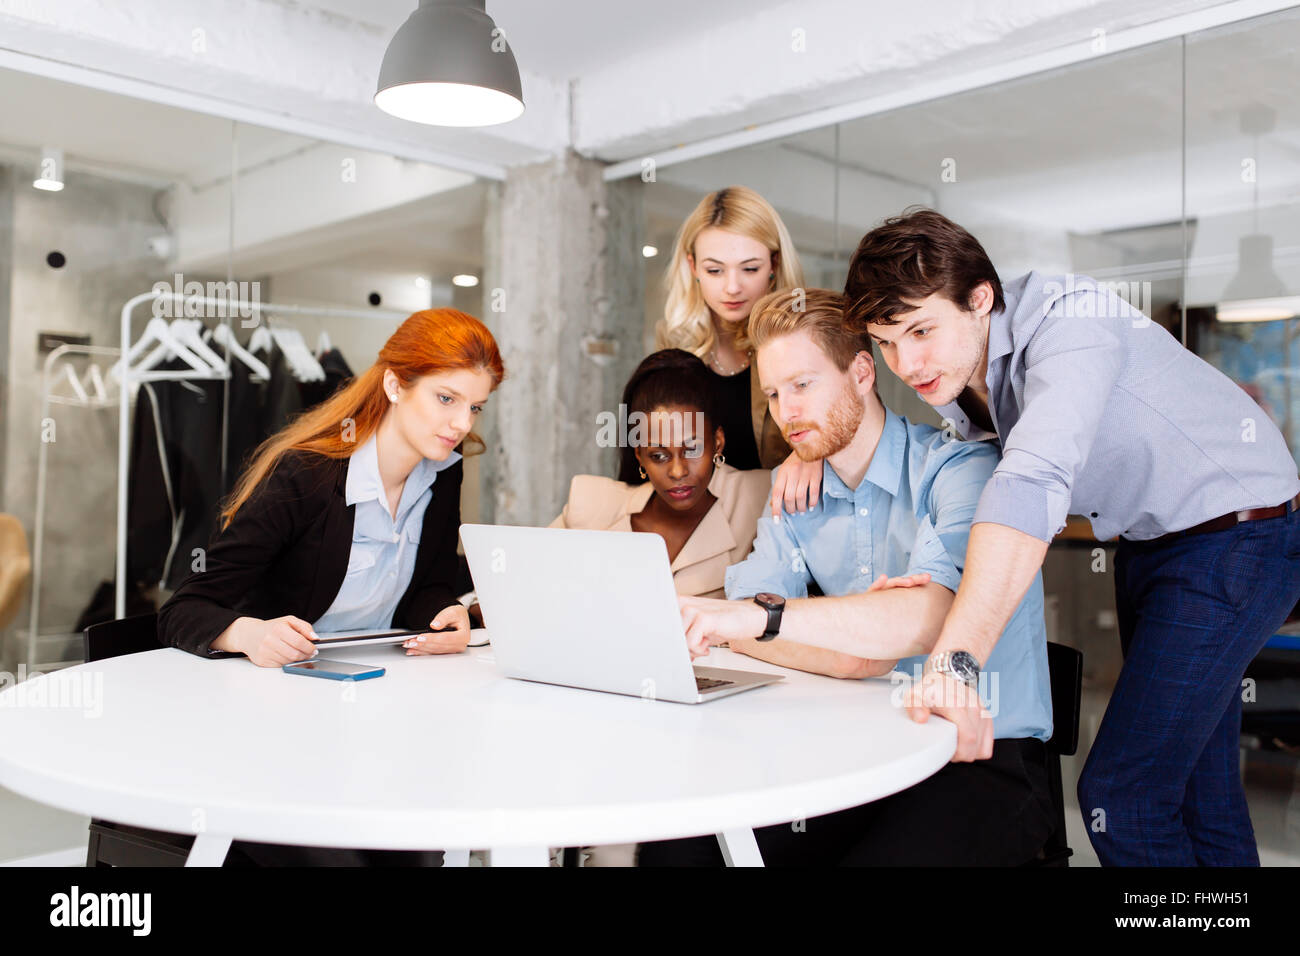 Creative business people and designers  brainstorming in a modern office - Stock Image